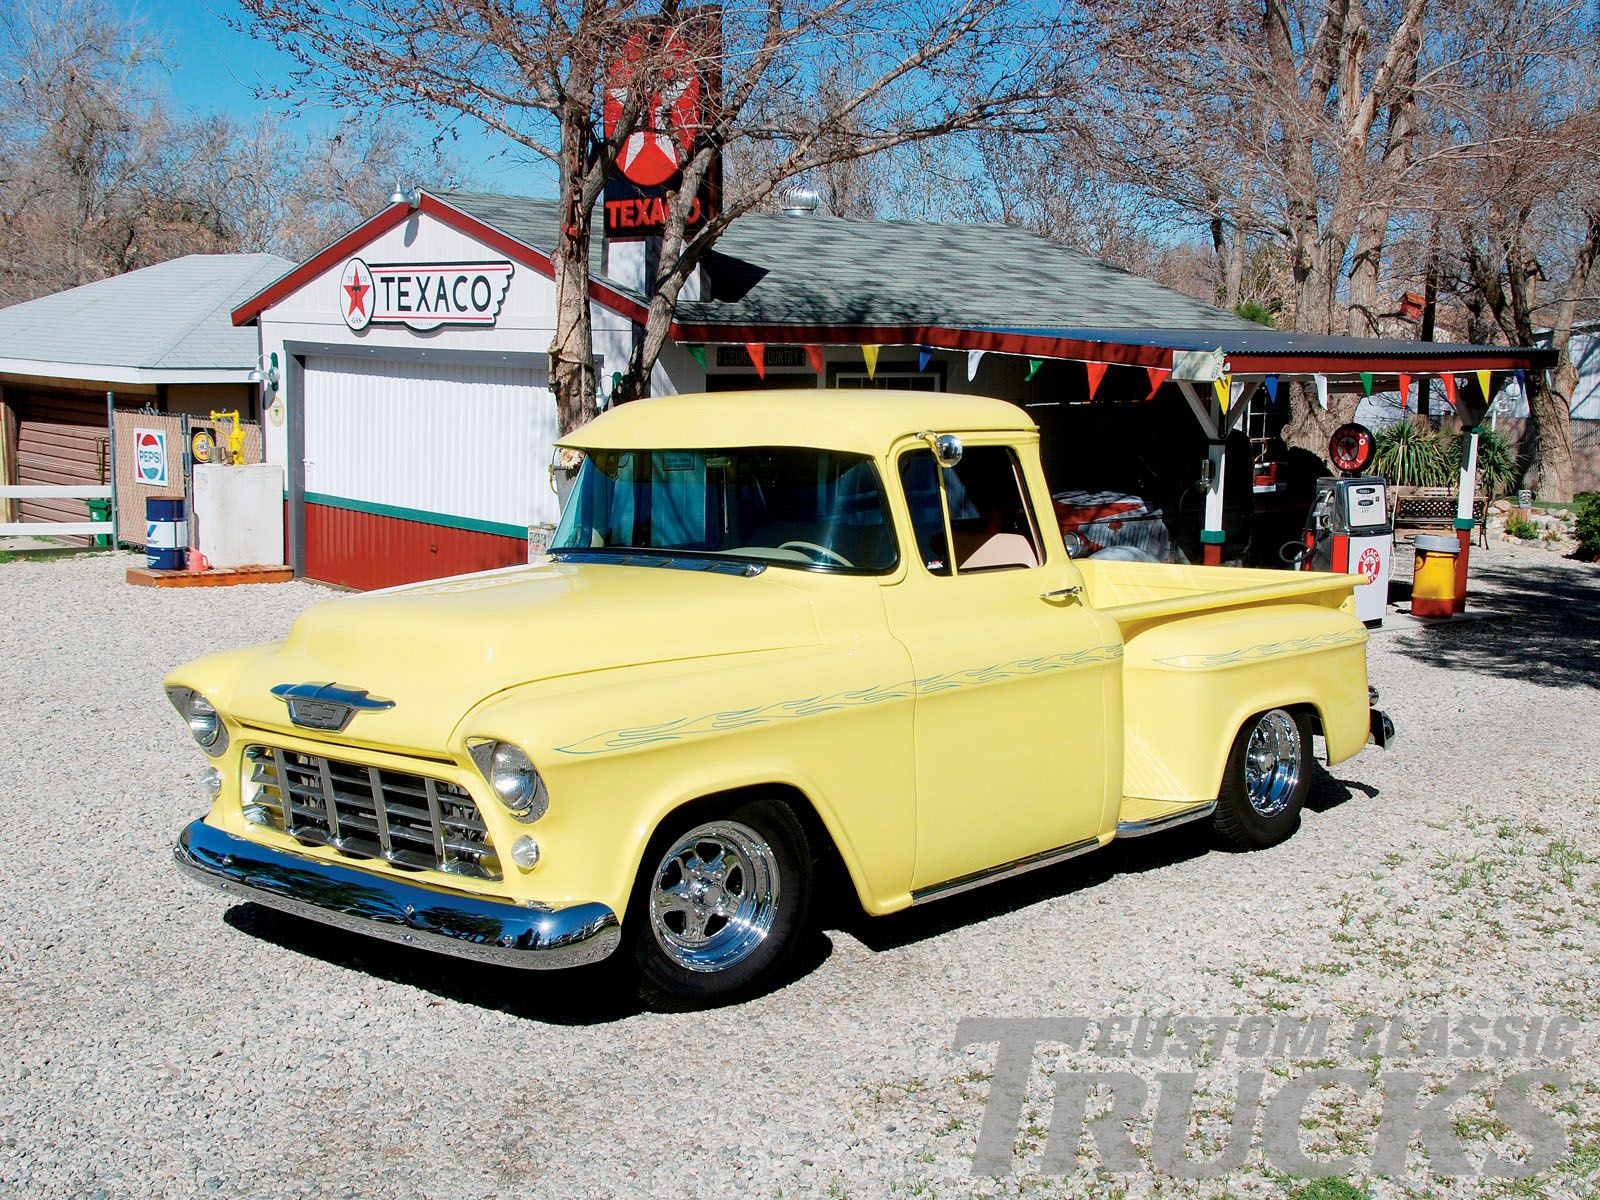 1955 chevrolet hot rod truck pictures to pin on pinterest - 1955 S Chevy Stepside Yellow Truck 1955 Chevy Pickup Truck Front Grill